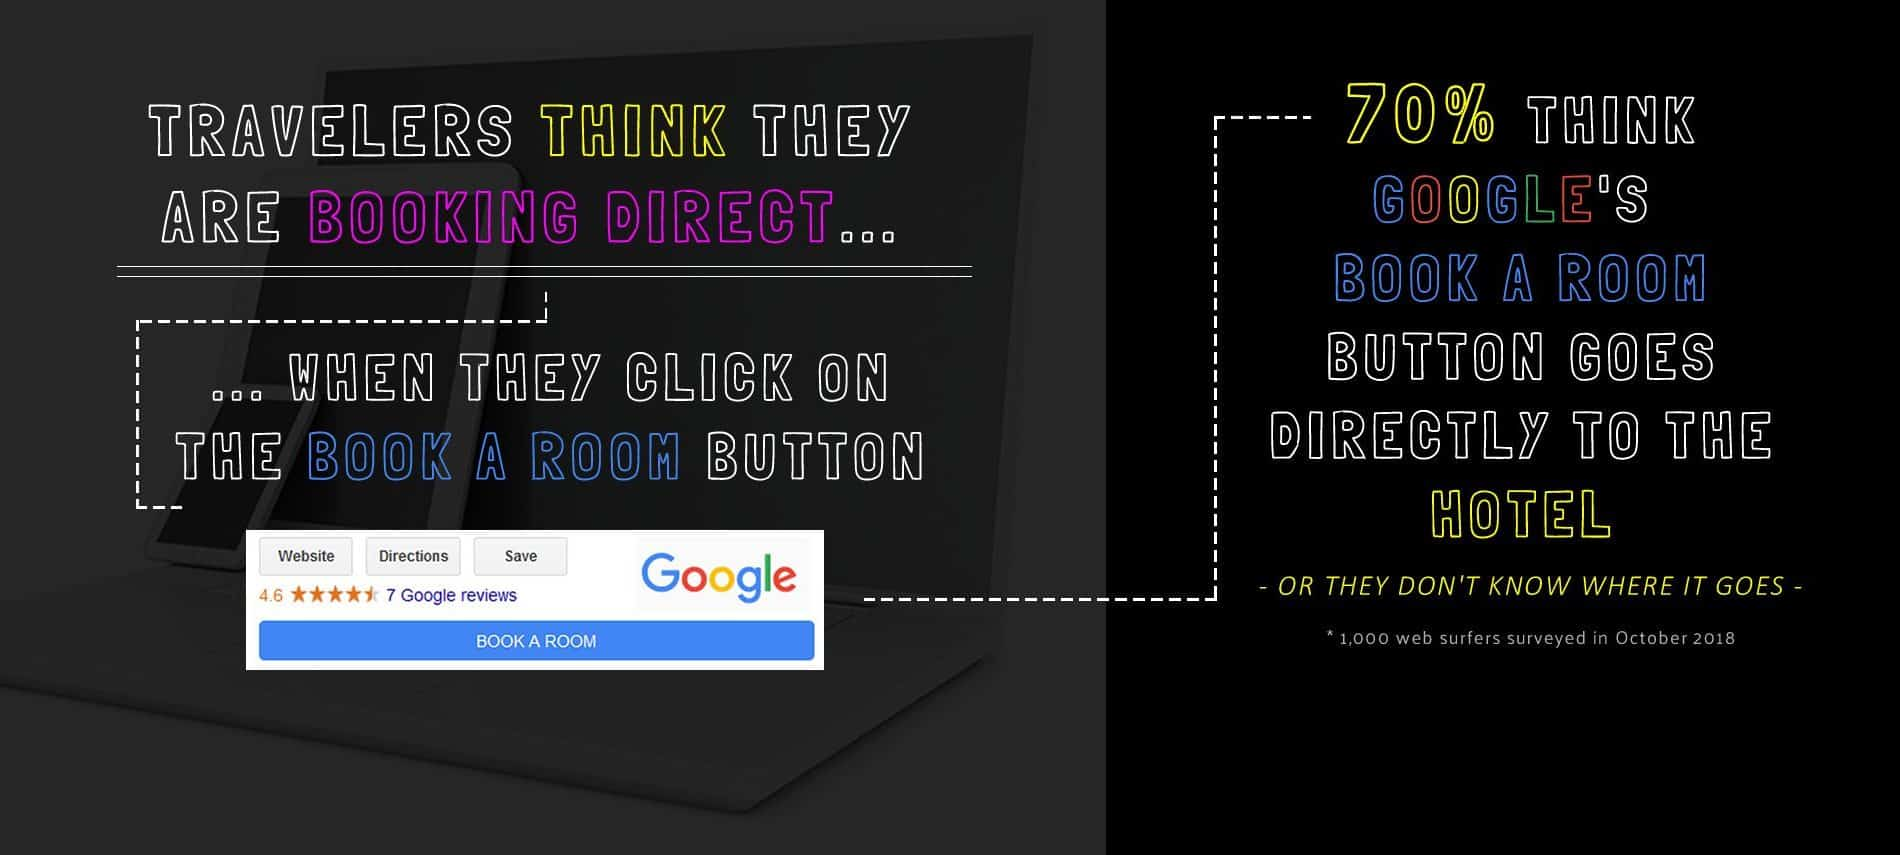 Infographic of travelers' knowledge of Google Book Now button